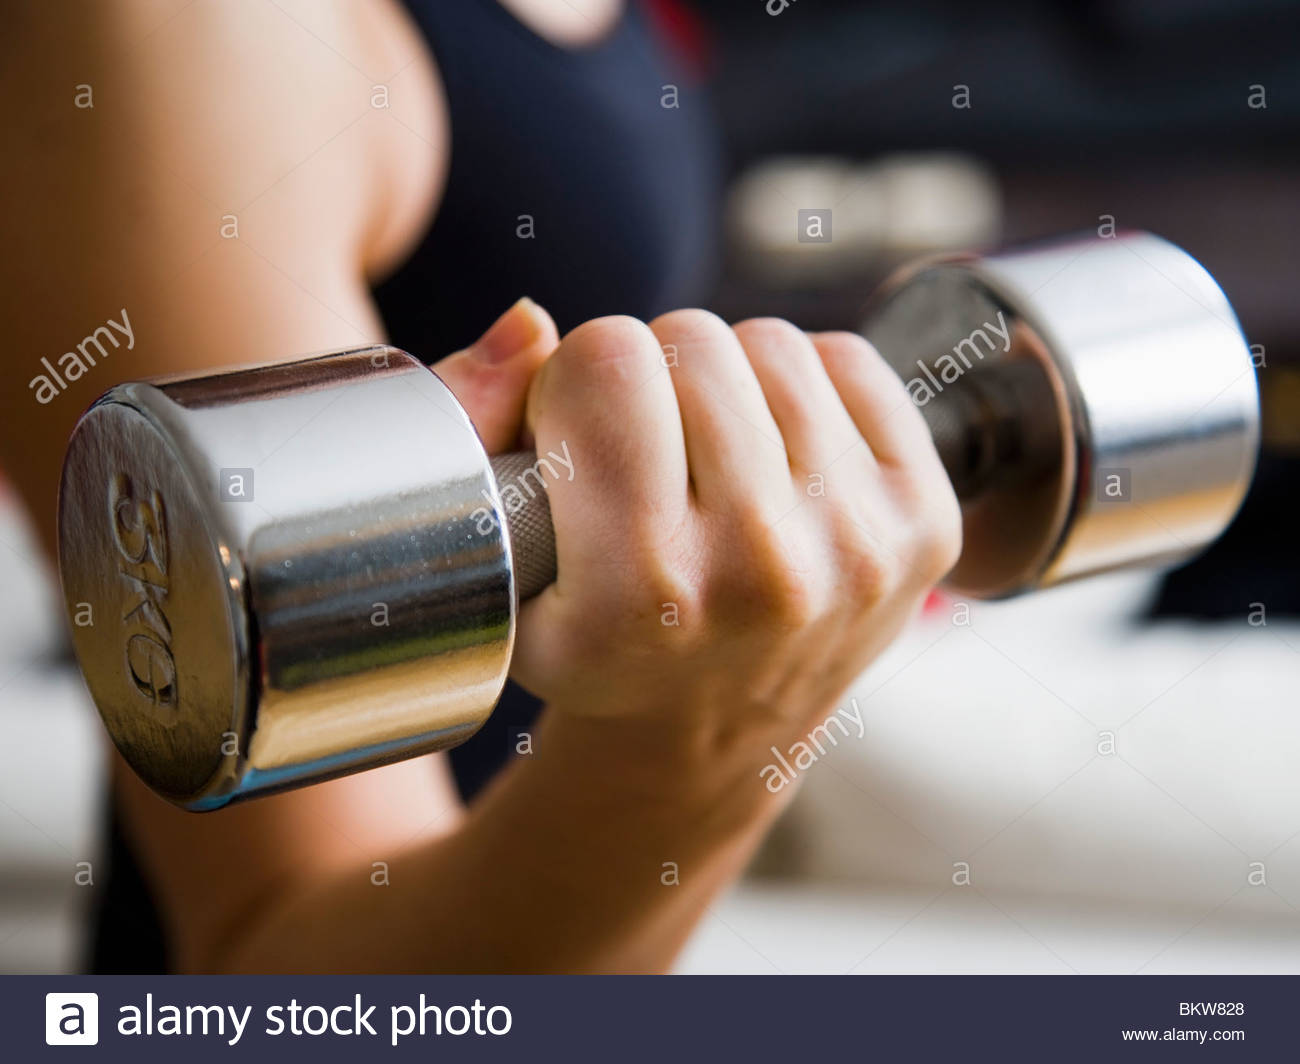 Work-out at gym - Stock Image